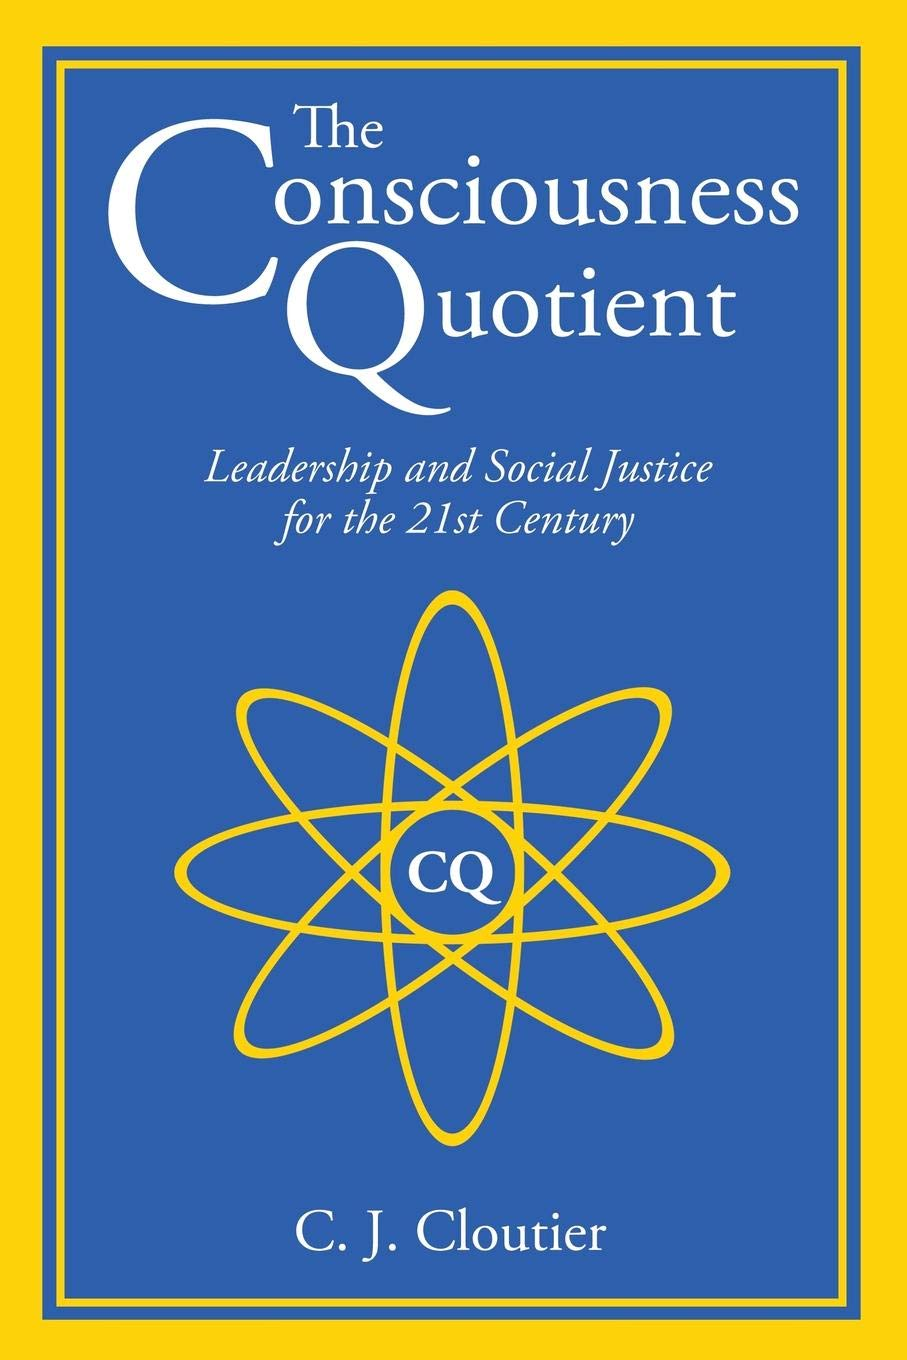 The Consciousness Quotient: Leadership and Social Justice for the 21st Century